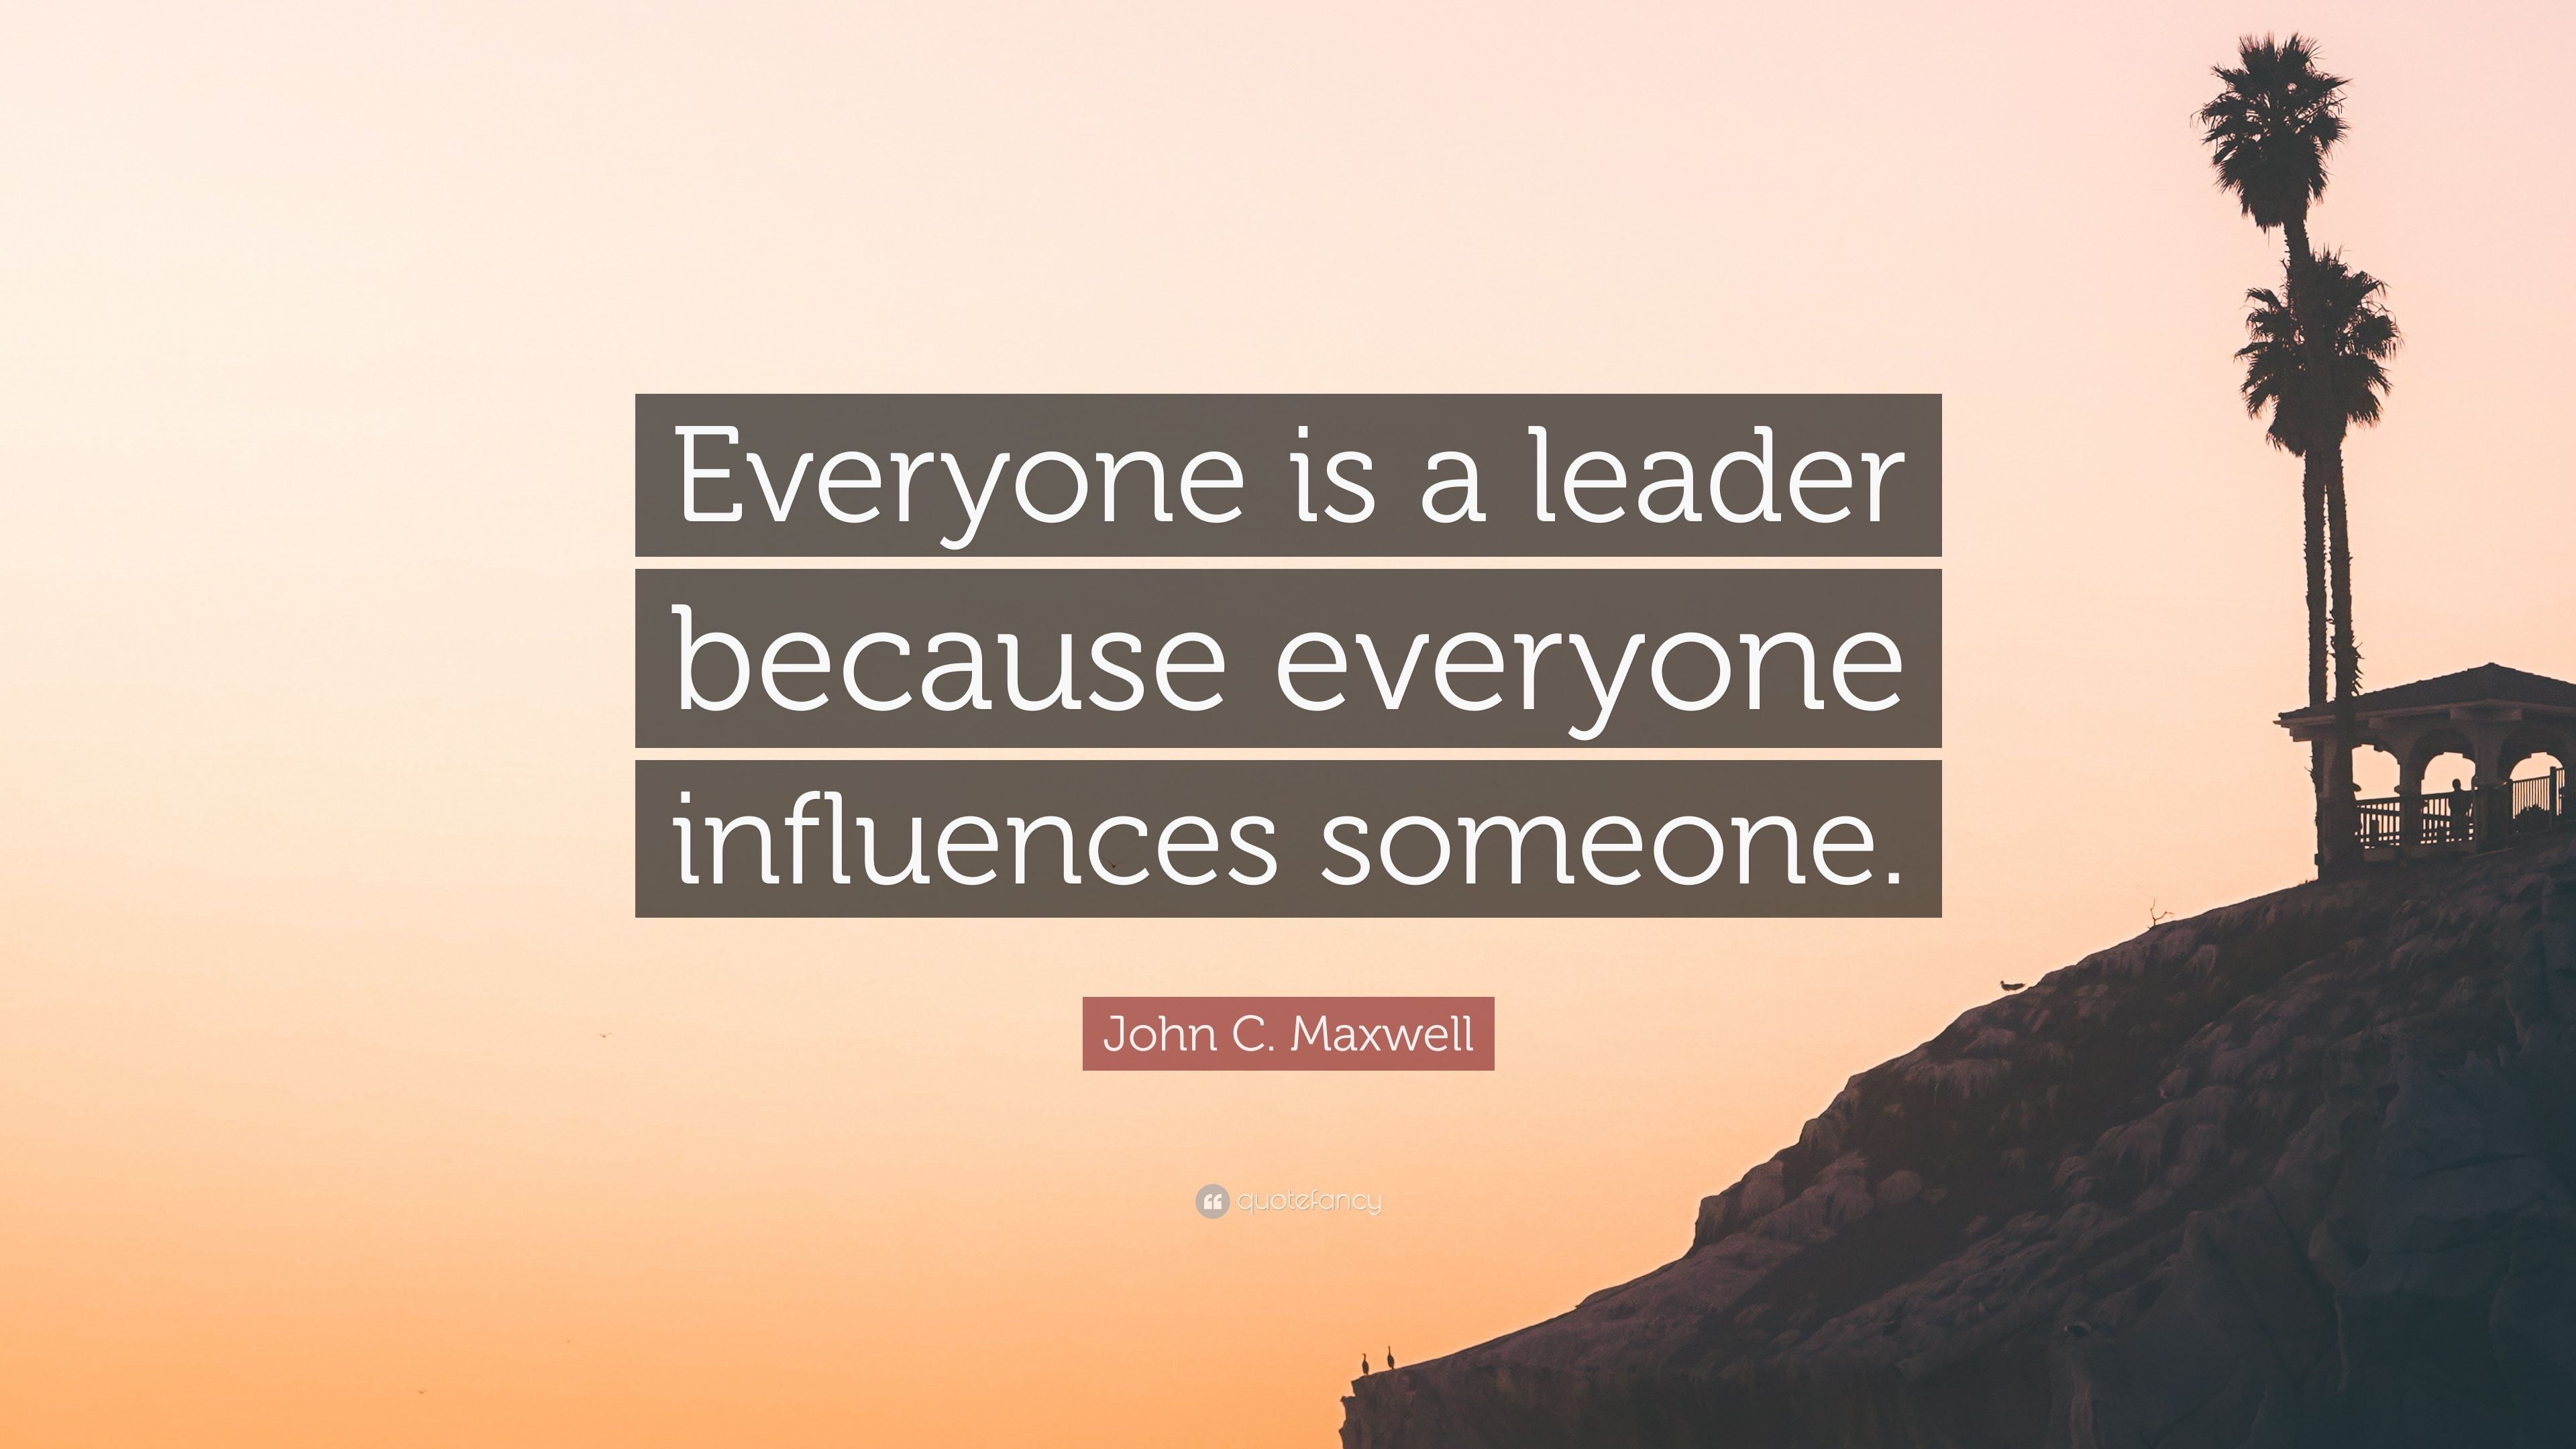 john c  maxwell quote   u201ceveryone is a leader because